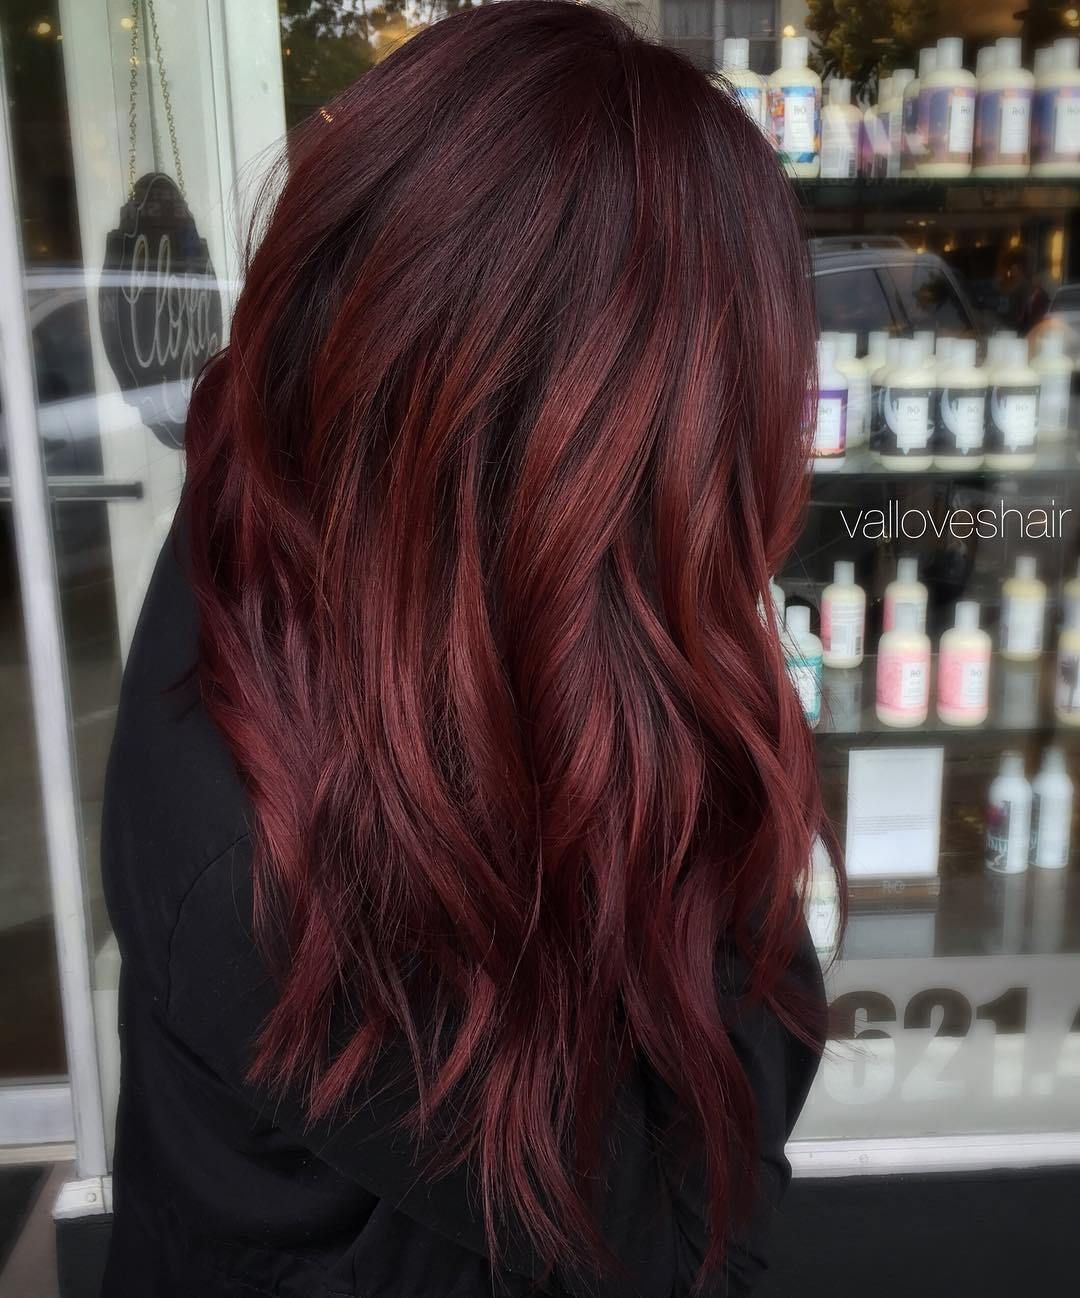 Dark Red Brown Hair Color Pictures - Best Way to Color Your Hair at ...